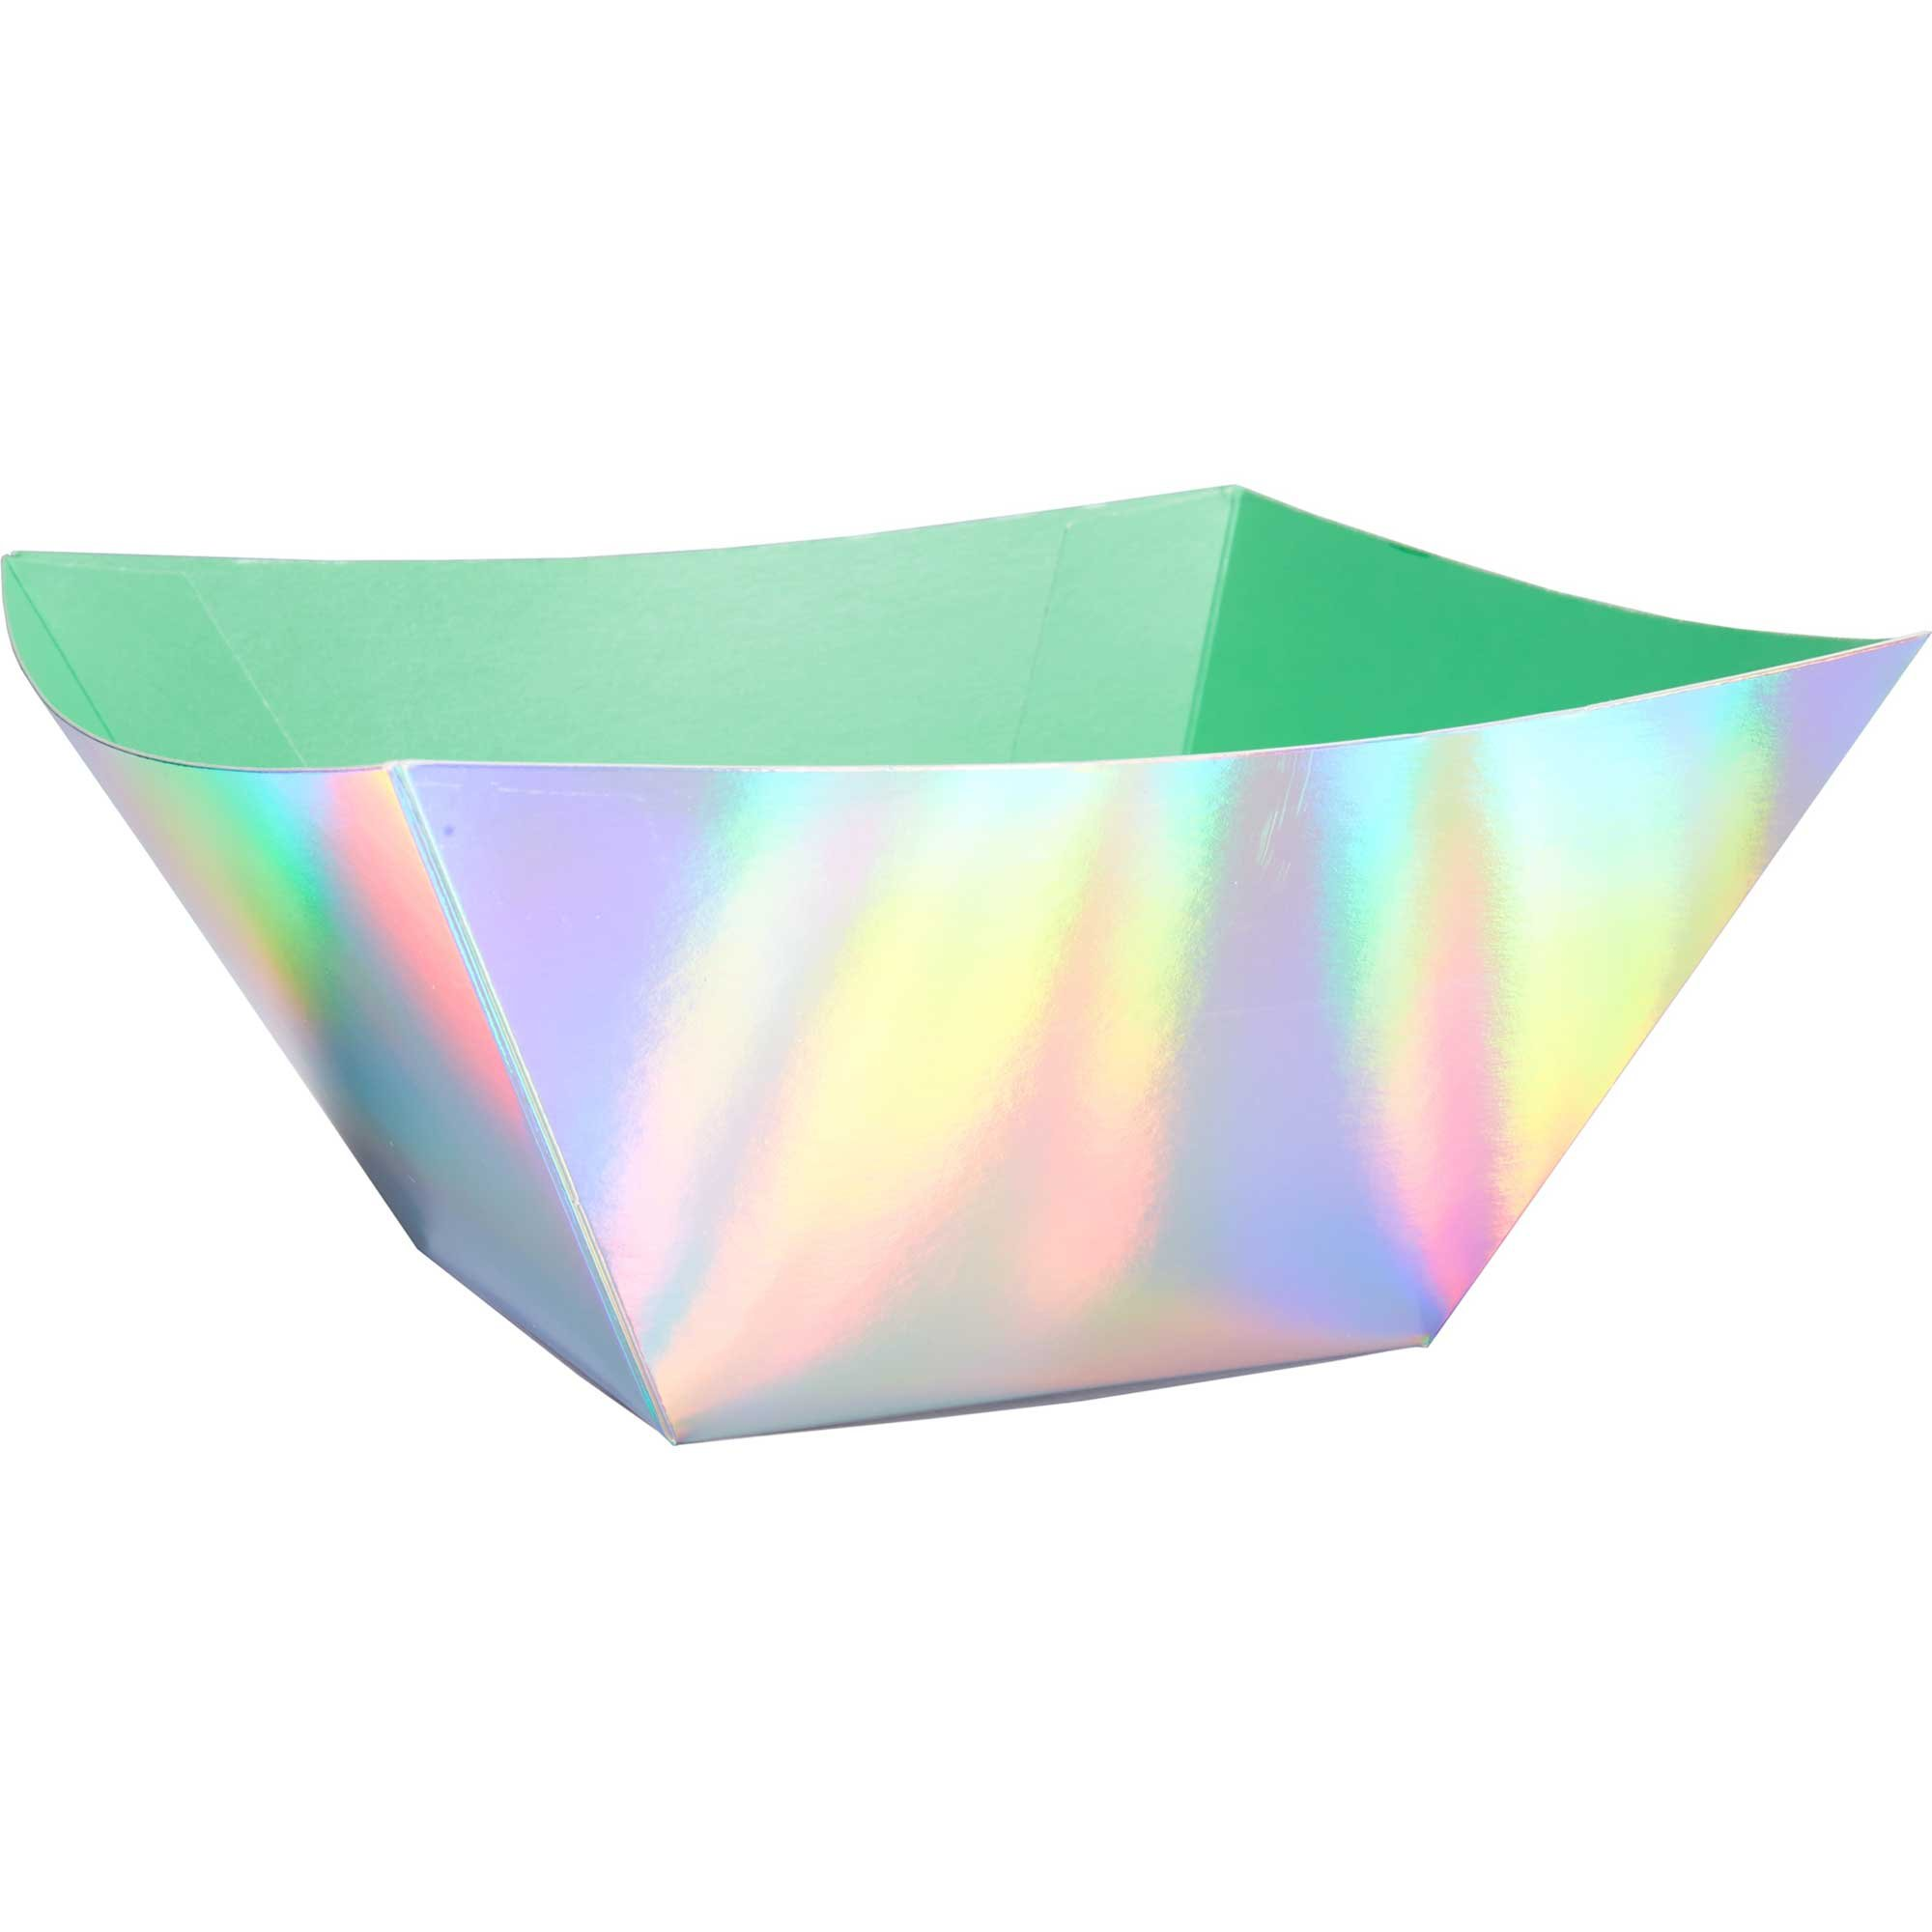 Shimmering Party Iridescent Paper Serving Bowls